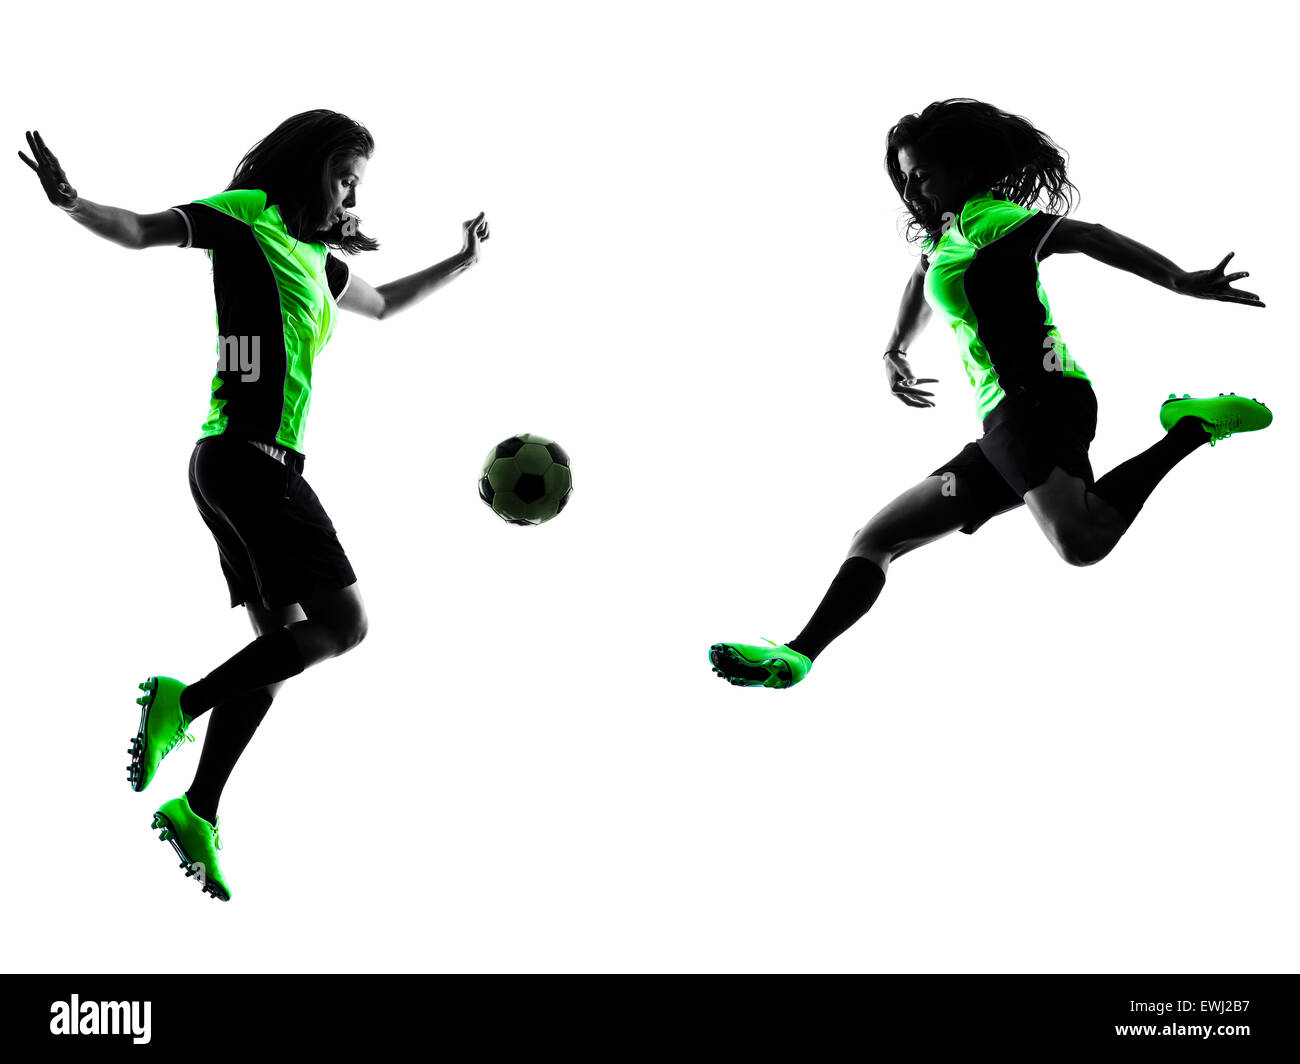 two women playing soccer players in silhouette isolated on white background - Stock Image